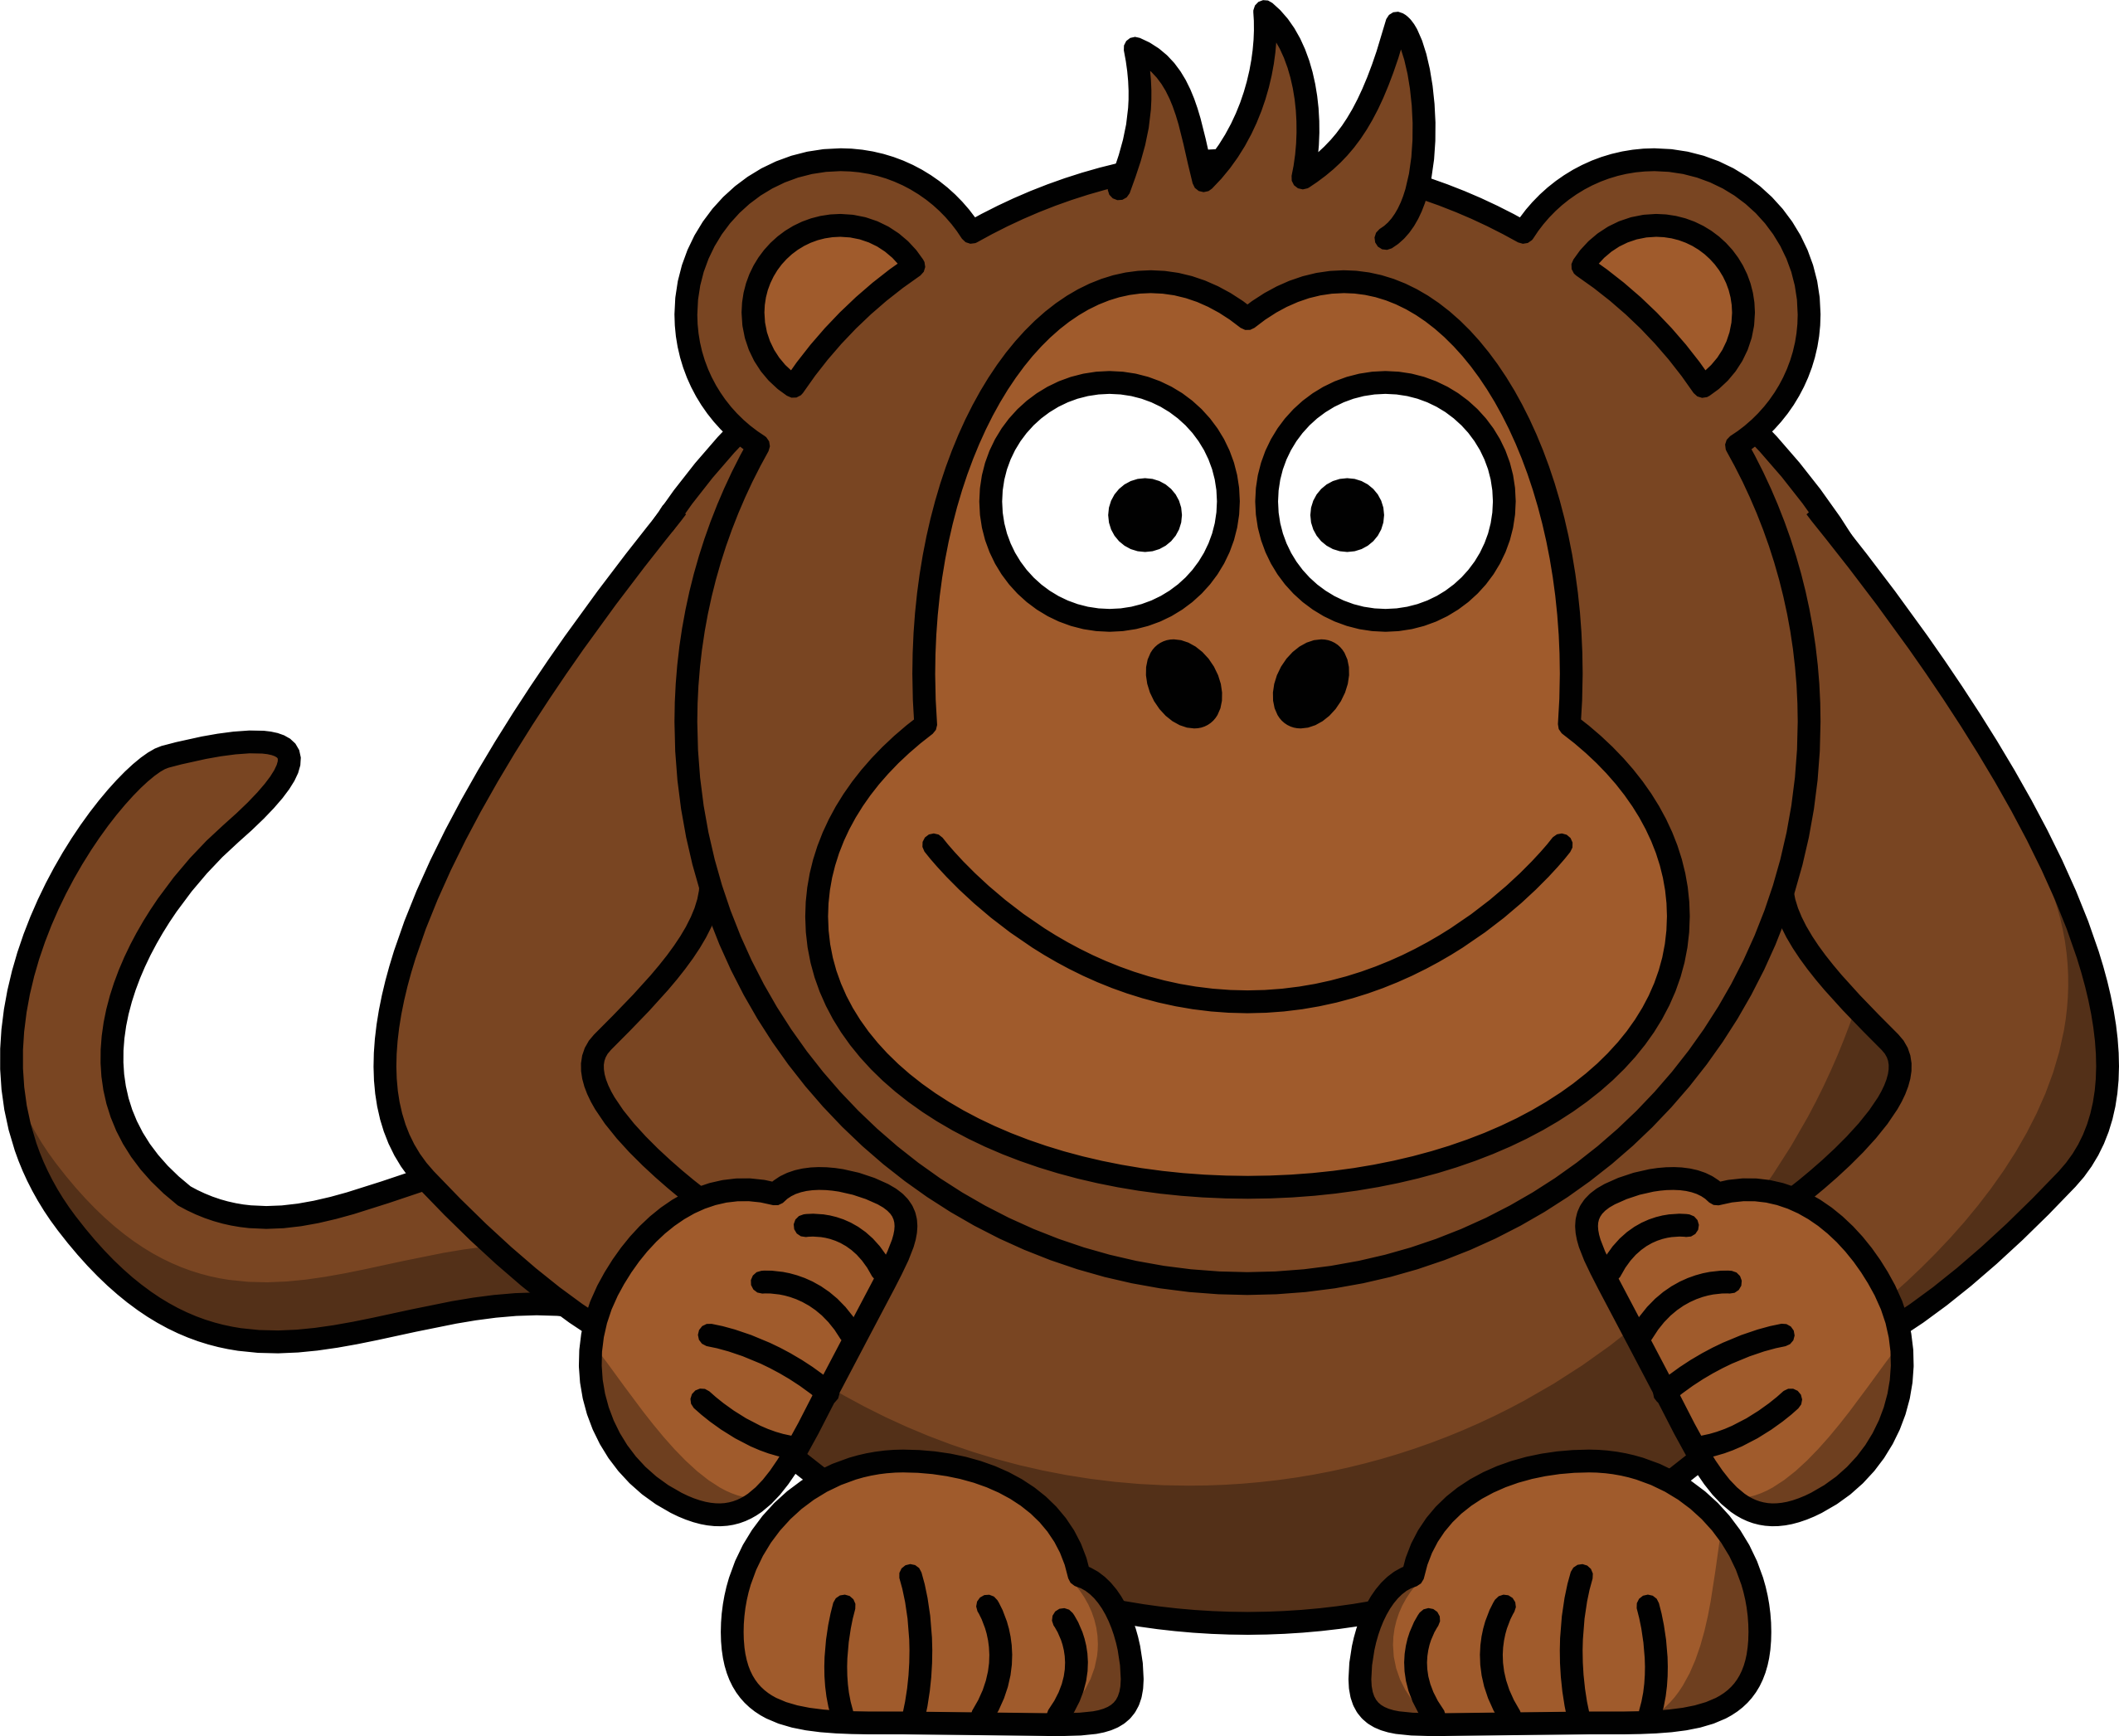 Monkey Cartoon Drawings - Cliparts.co